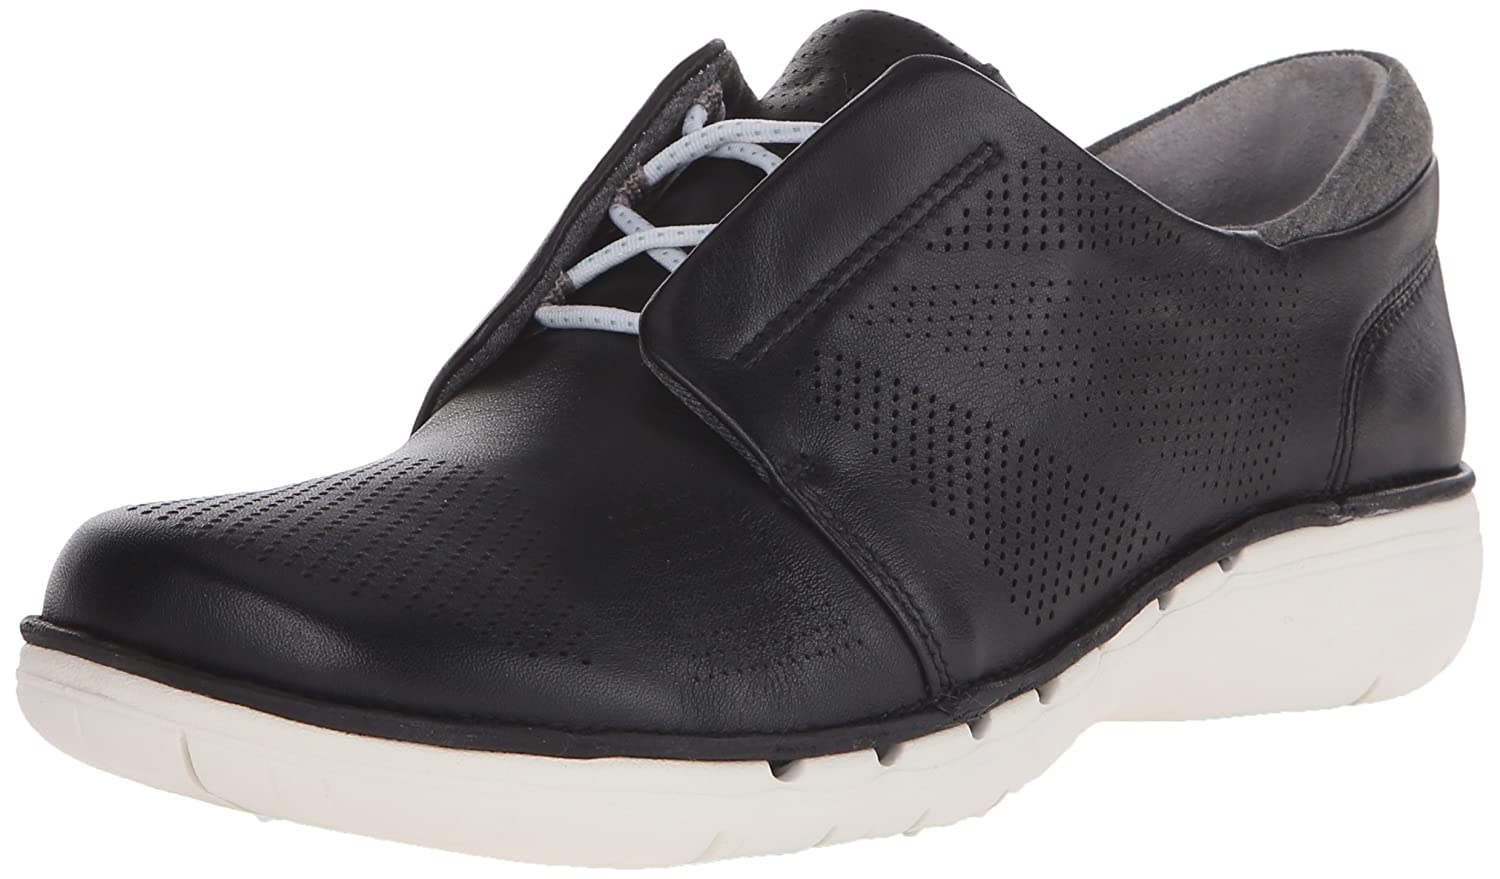 CLARKS Women's UN Voltra Walking Shoe B011VI5YFK 9 W US|Black Leather